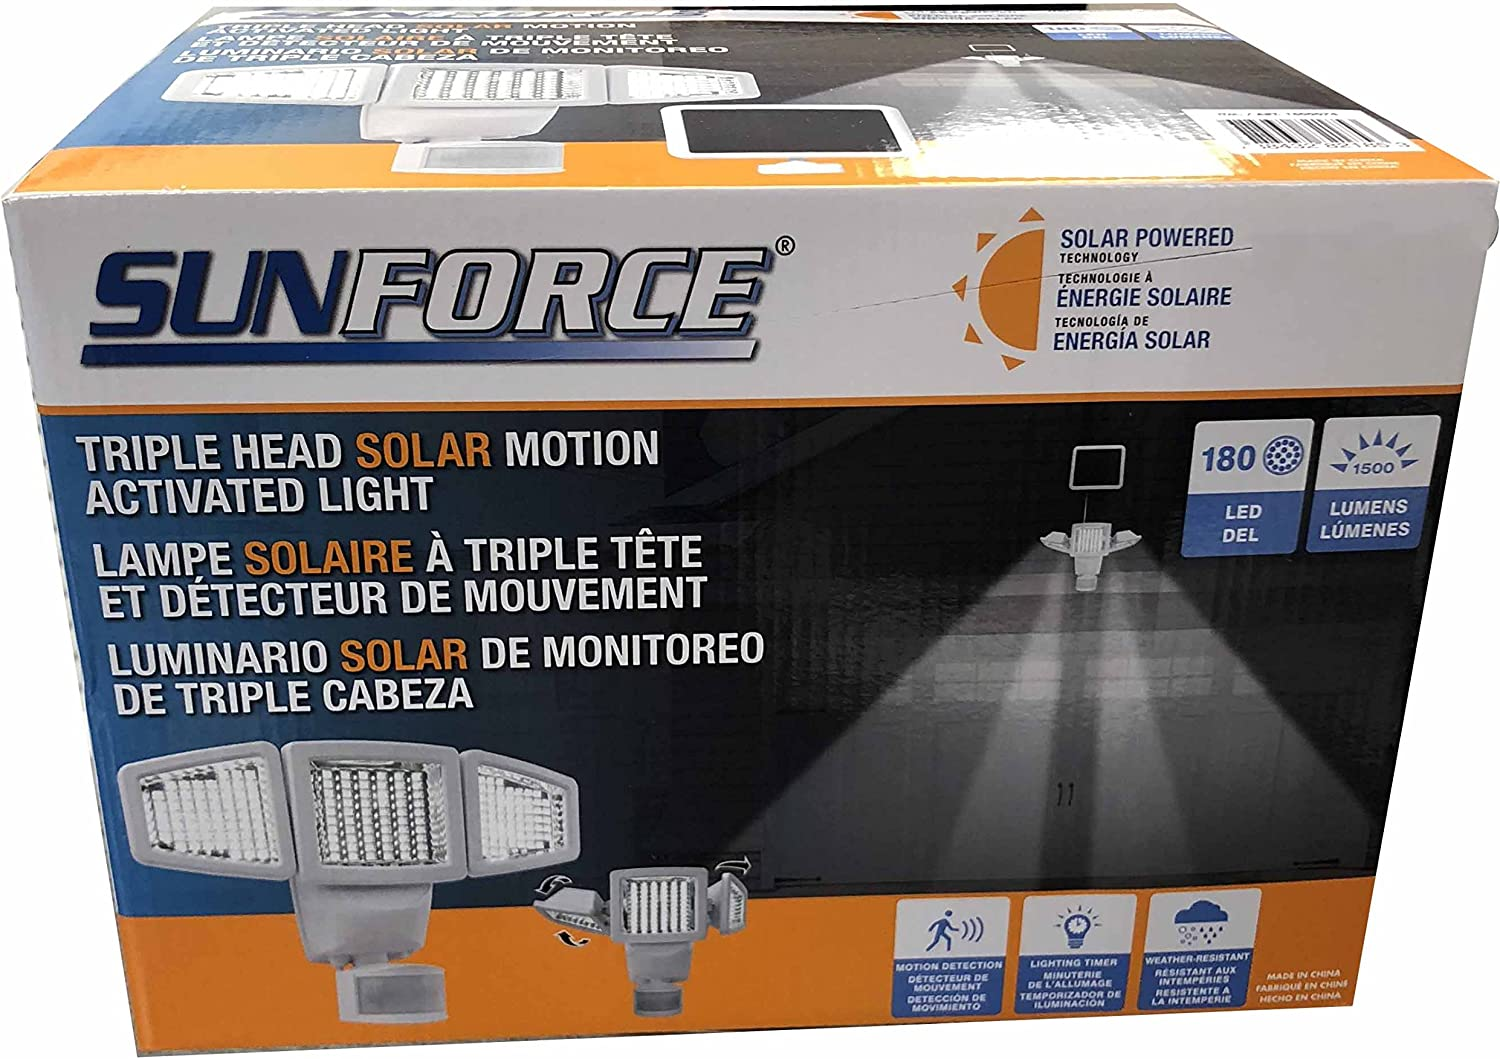 Sunforce Solar Triple Max 87% OFF Head Motion 1500 Activated Security Bombing new work Light